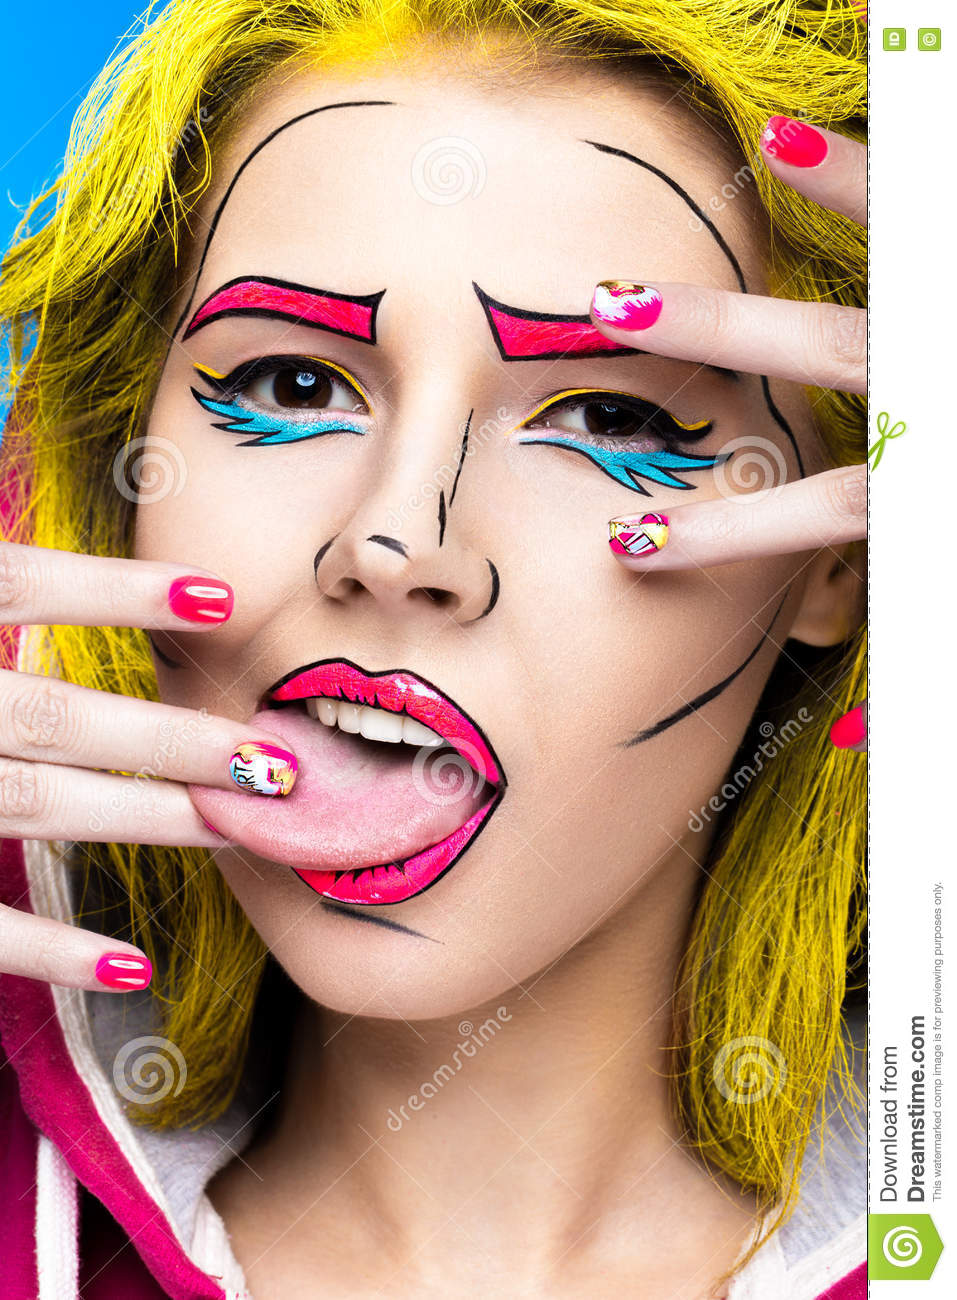 Photo of surprised young woman with professional comic pop art make-up and design manicure. Creative beauty style.